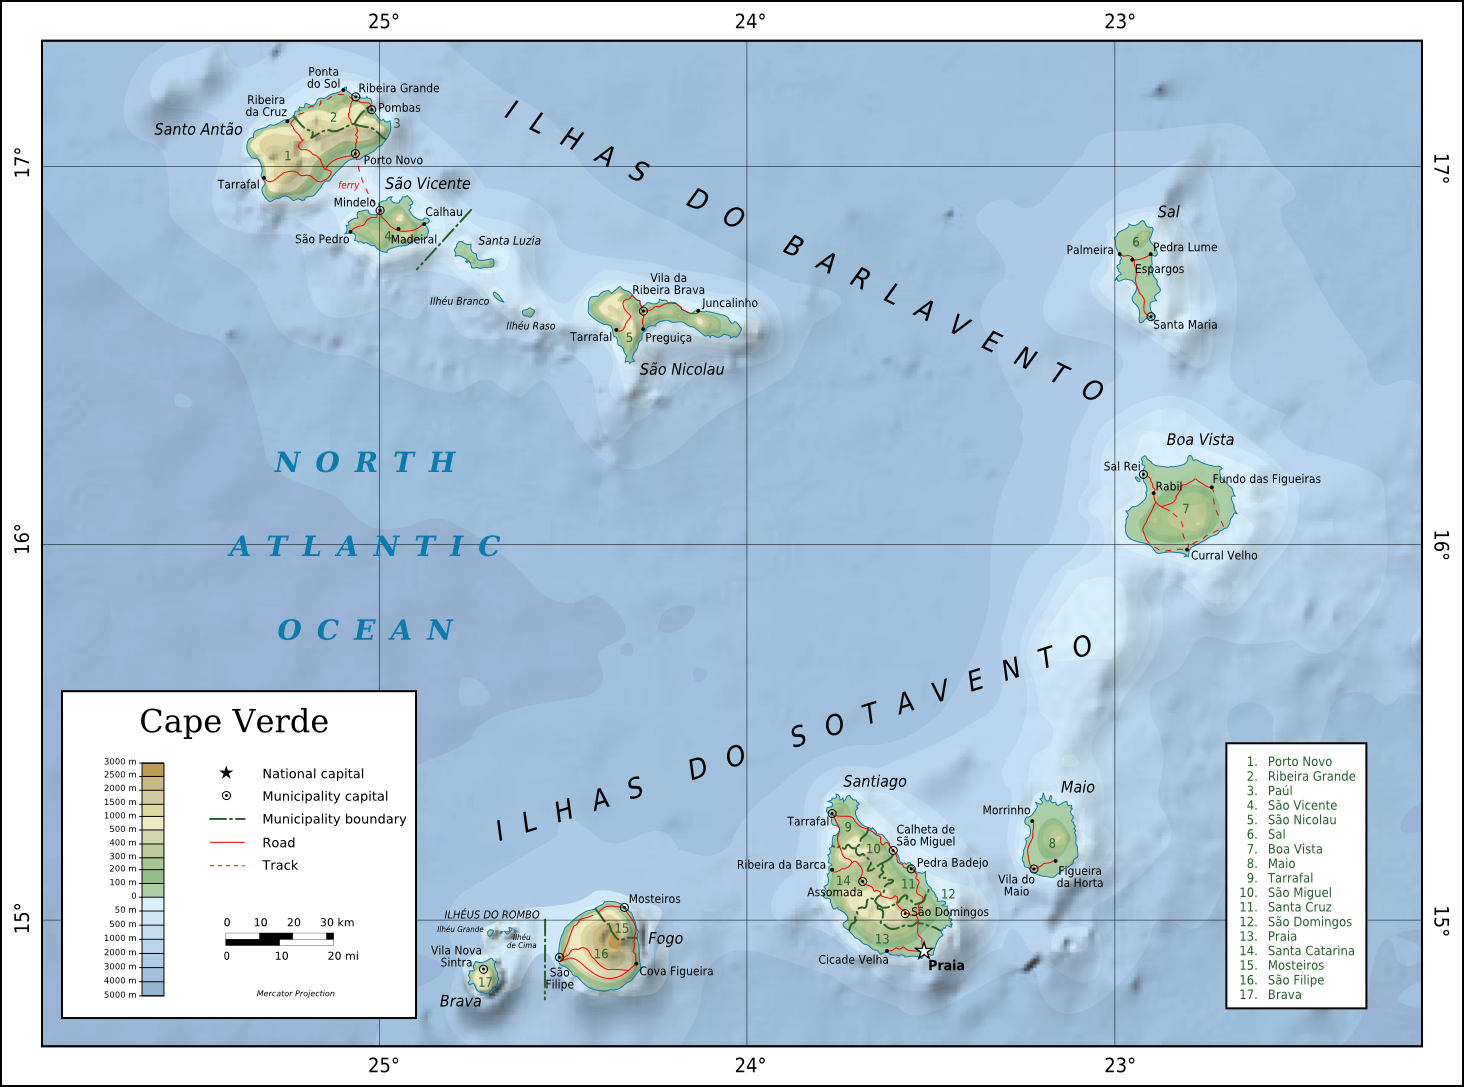 Topographic map of Cape Verde, now known officially as Cabo Verde